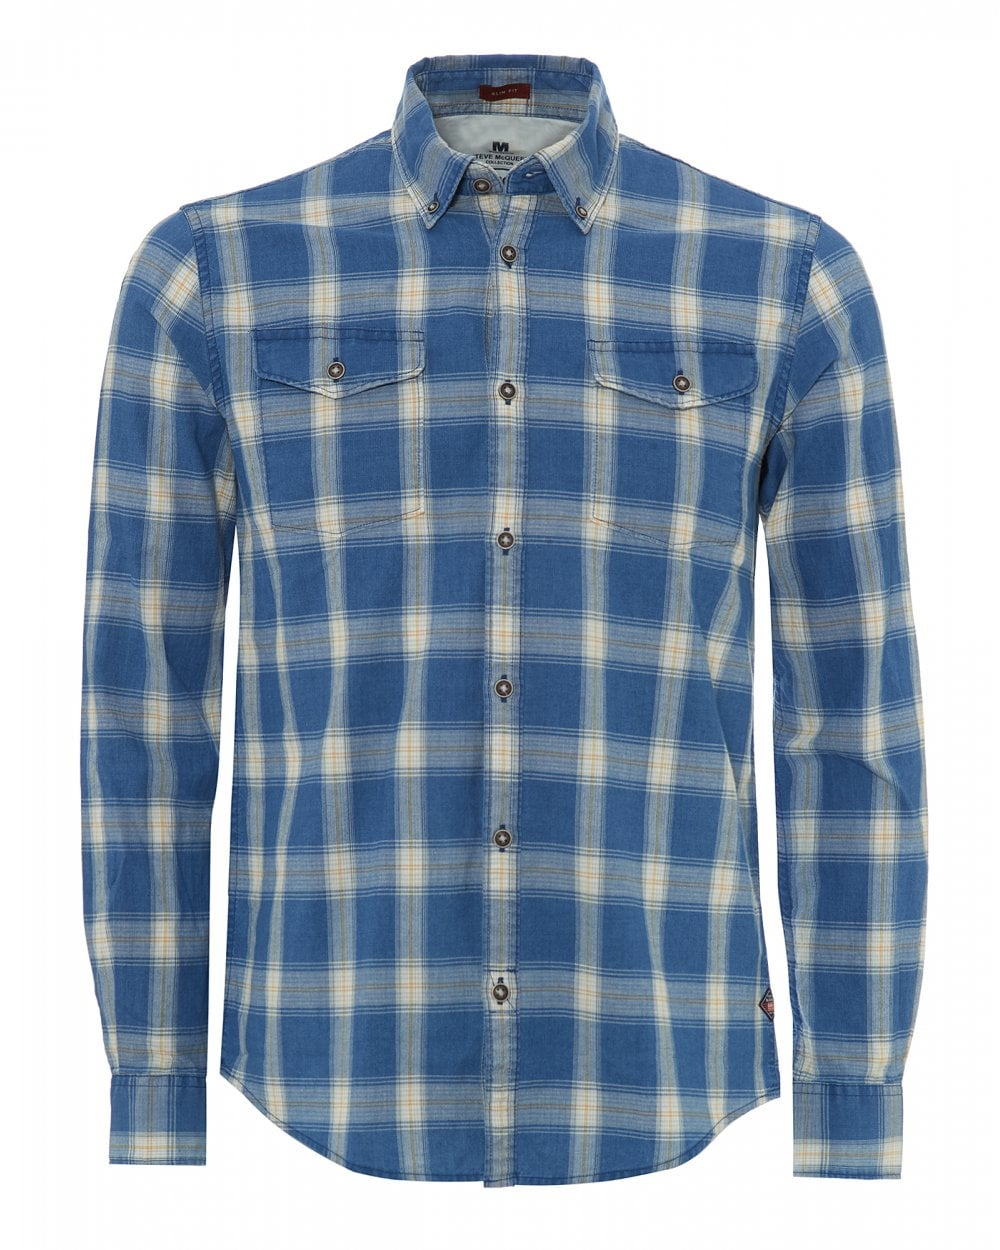 051fcf7a14 Barbour International Mens Steve McQueen Holman Check Shirt